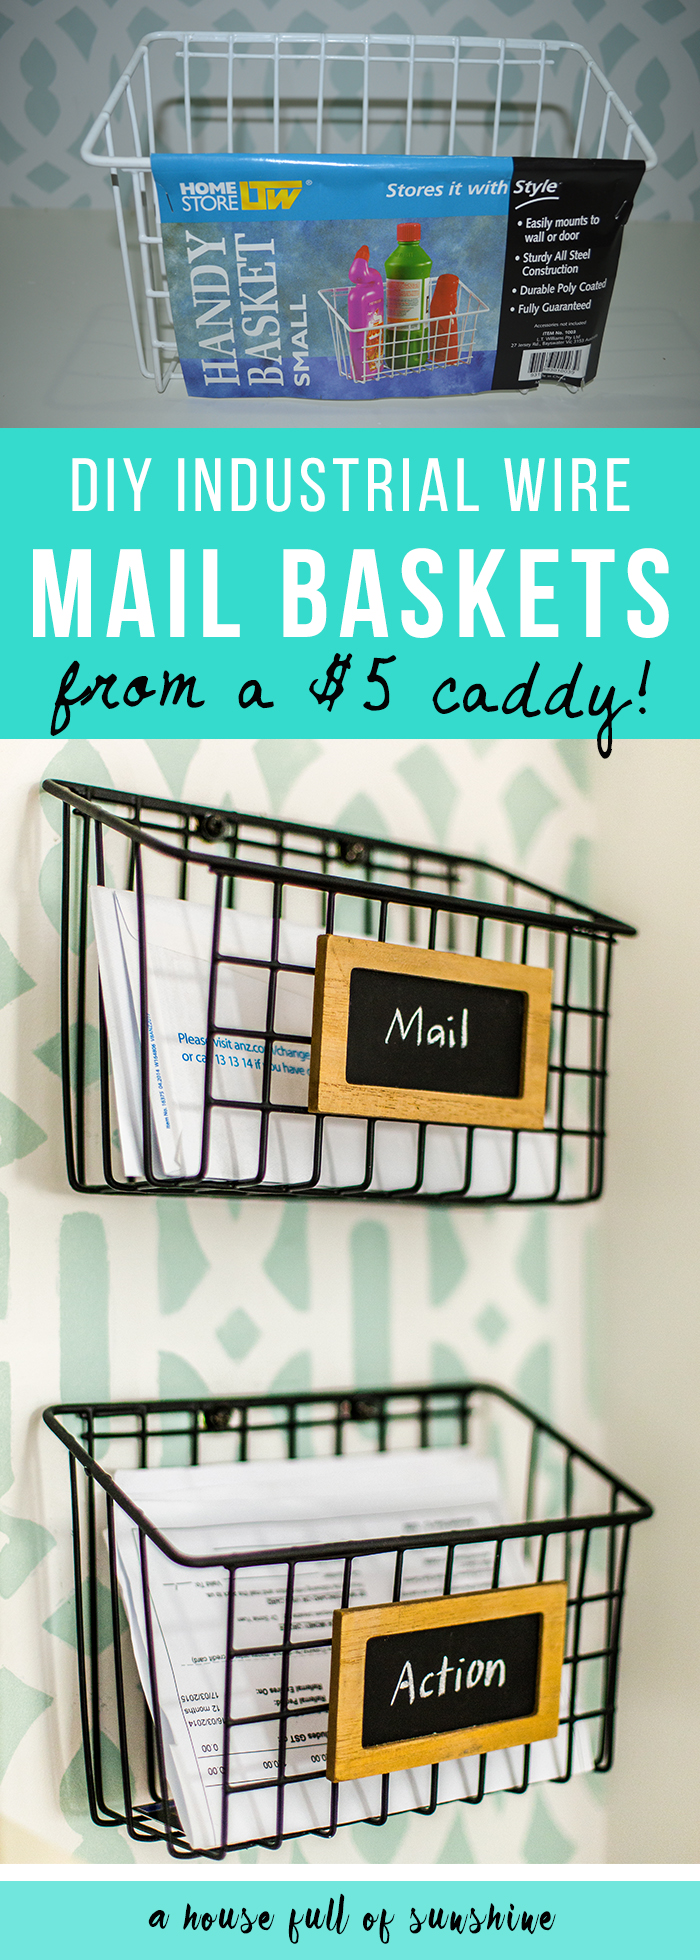 DIY industrial wire mail baskets | A House Full of Sunshine